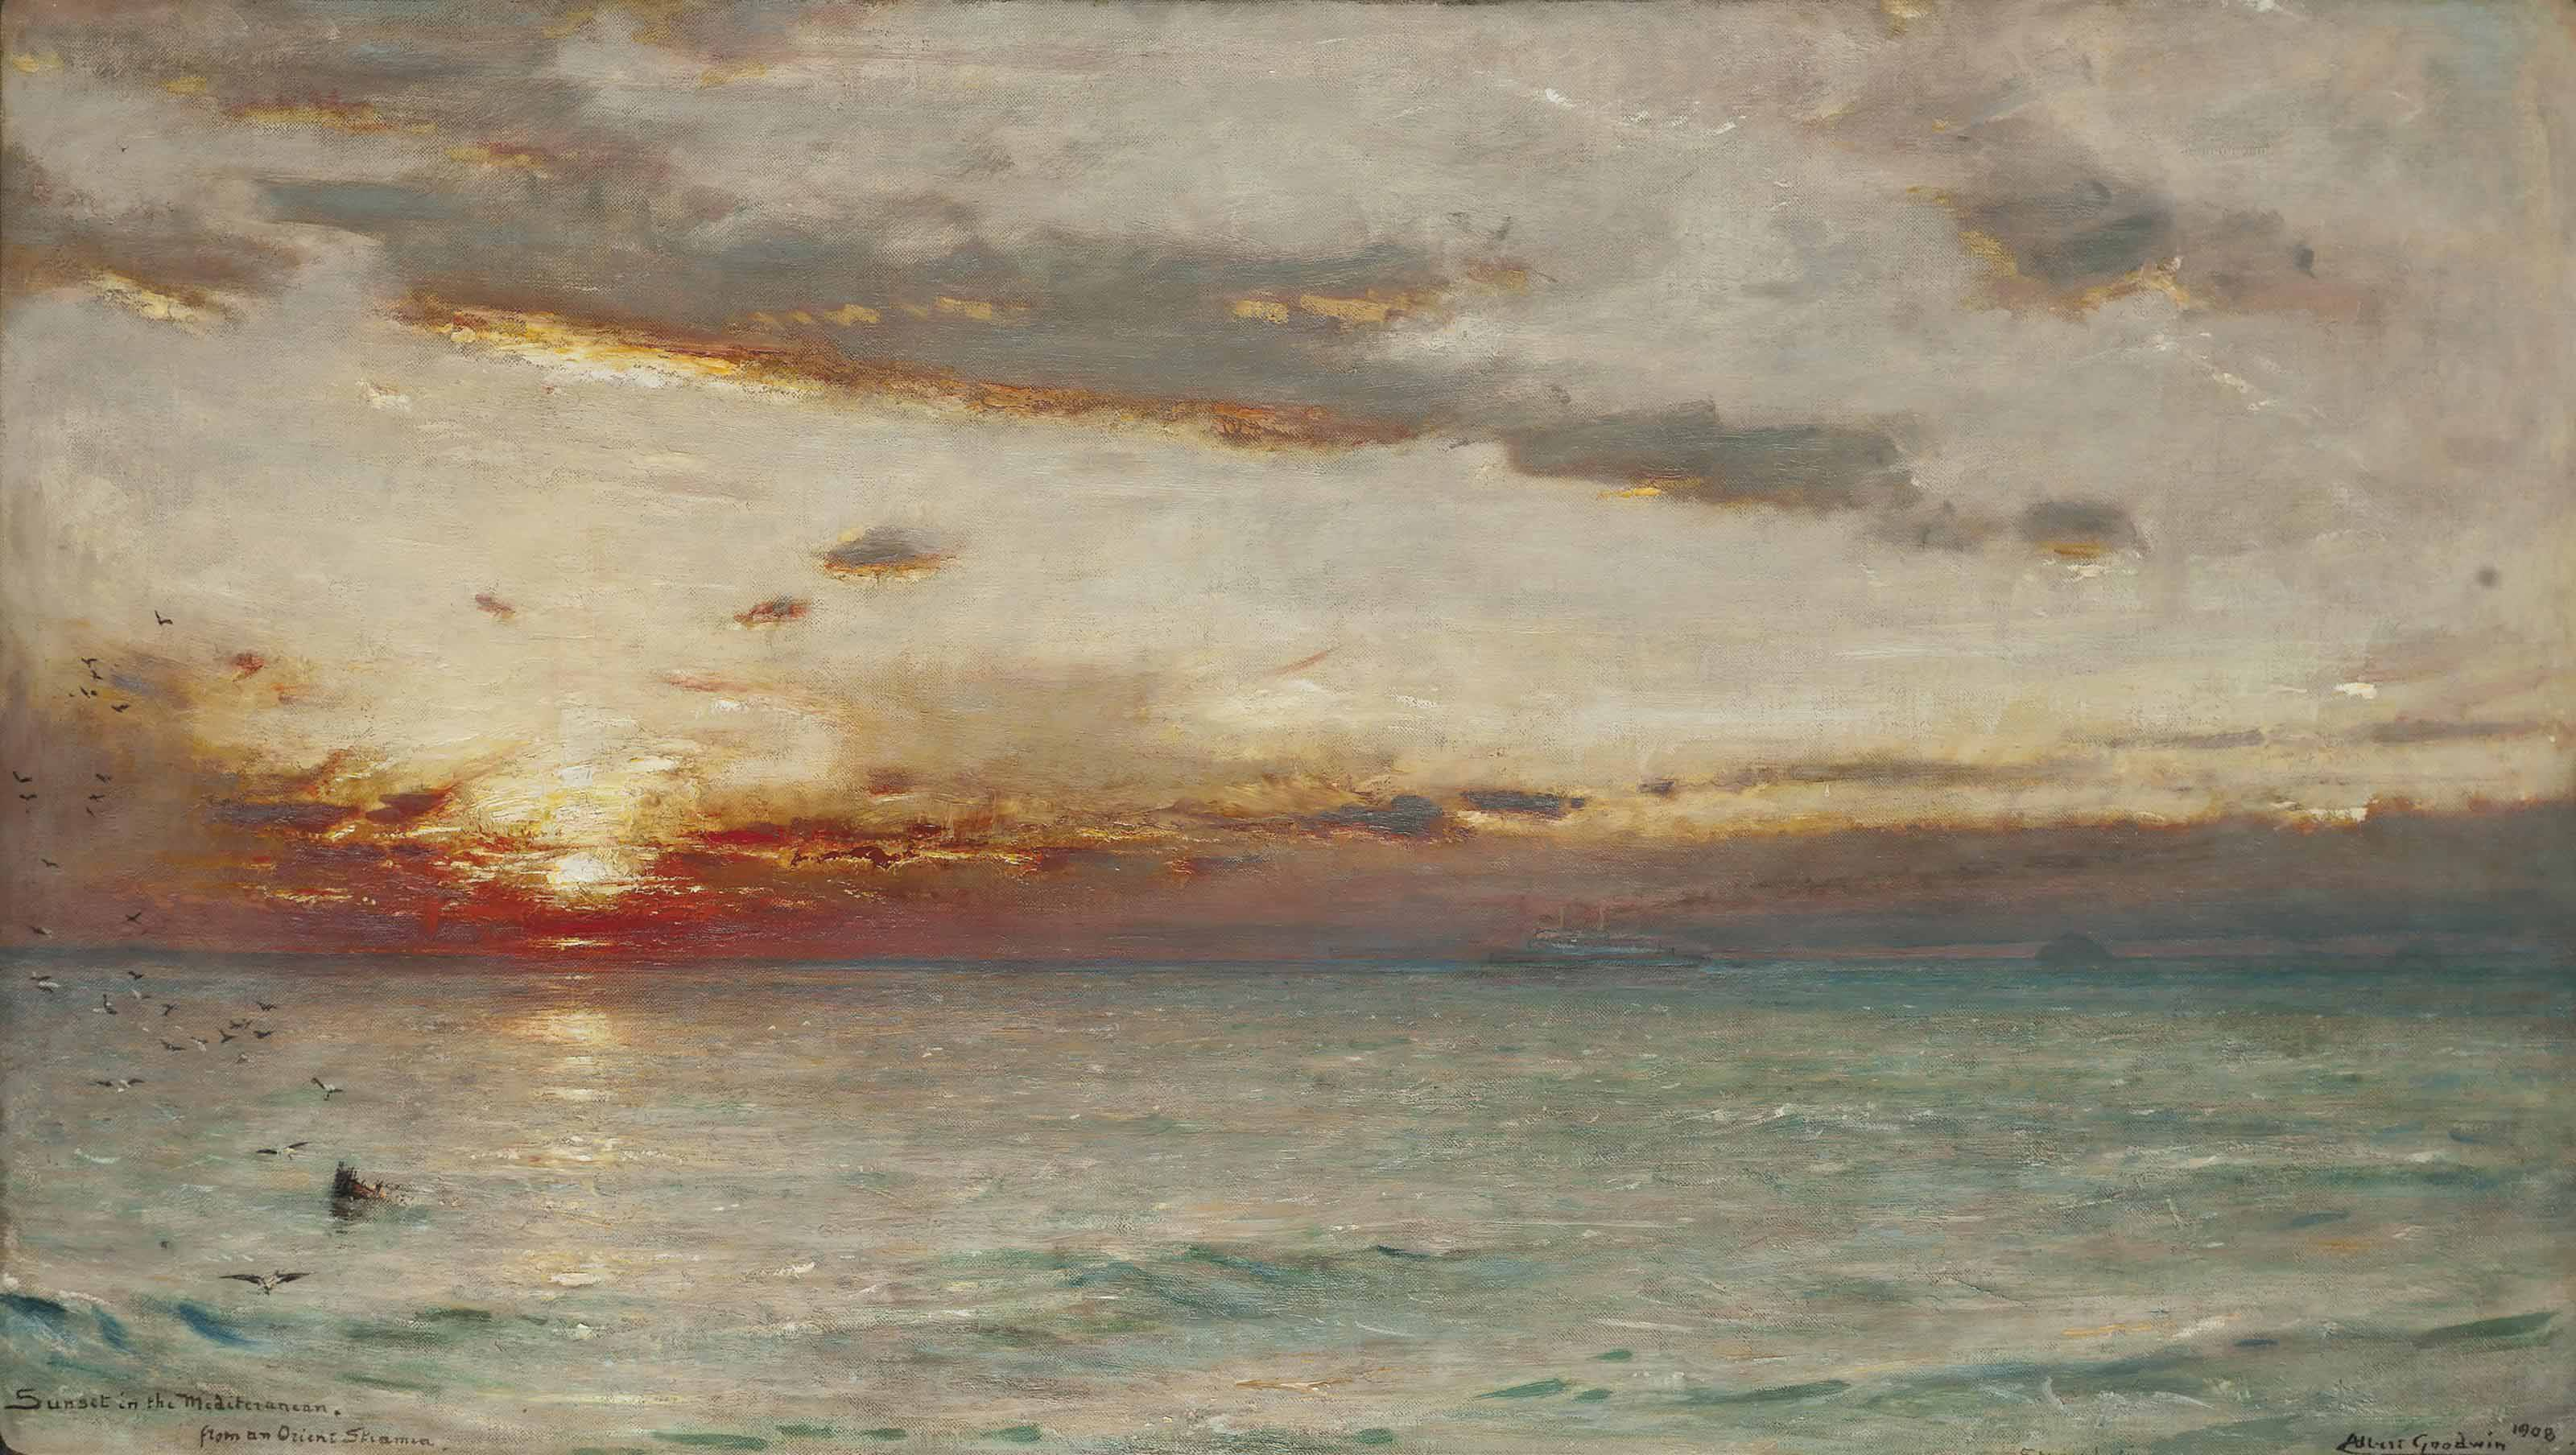 Sunset in the Mediterranean from an Orient steamer